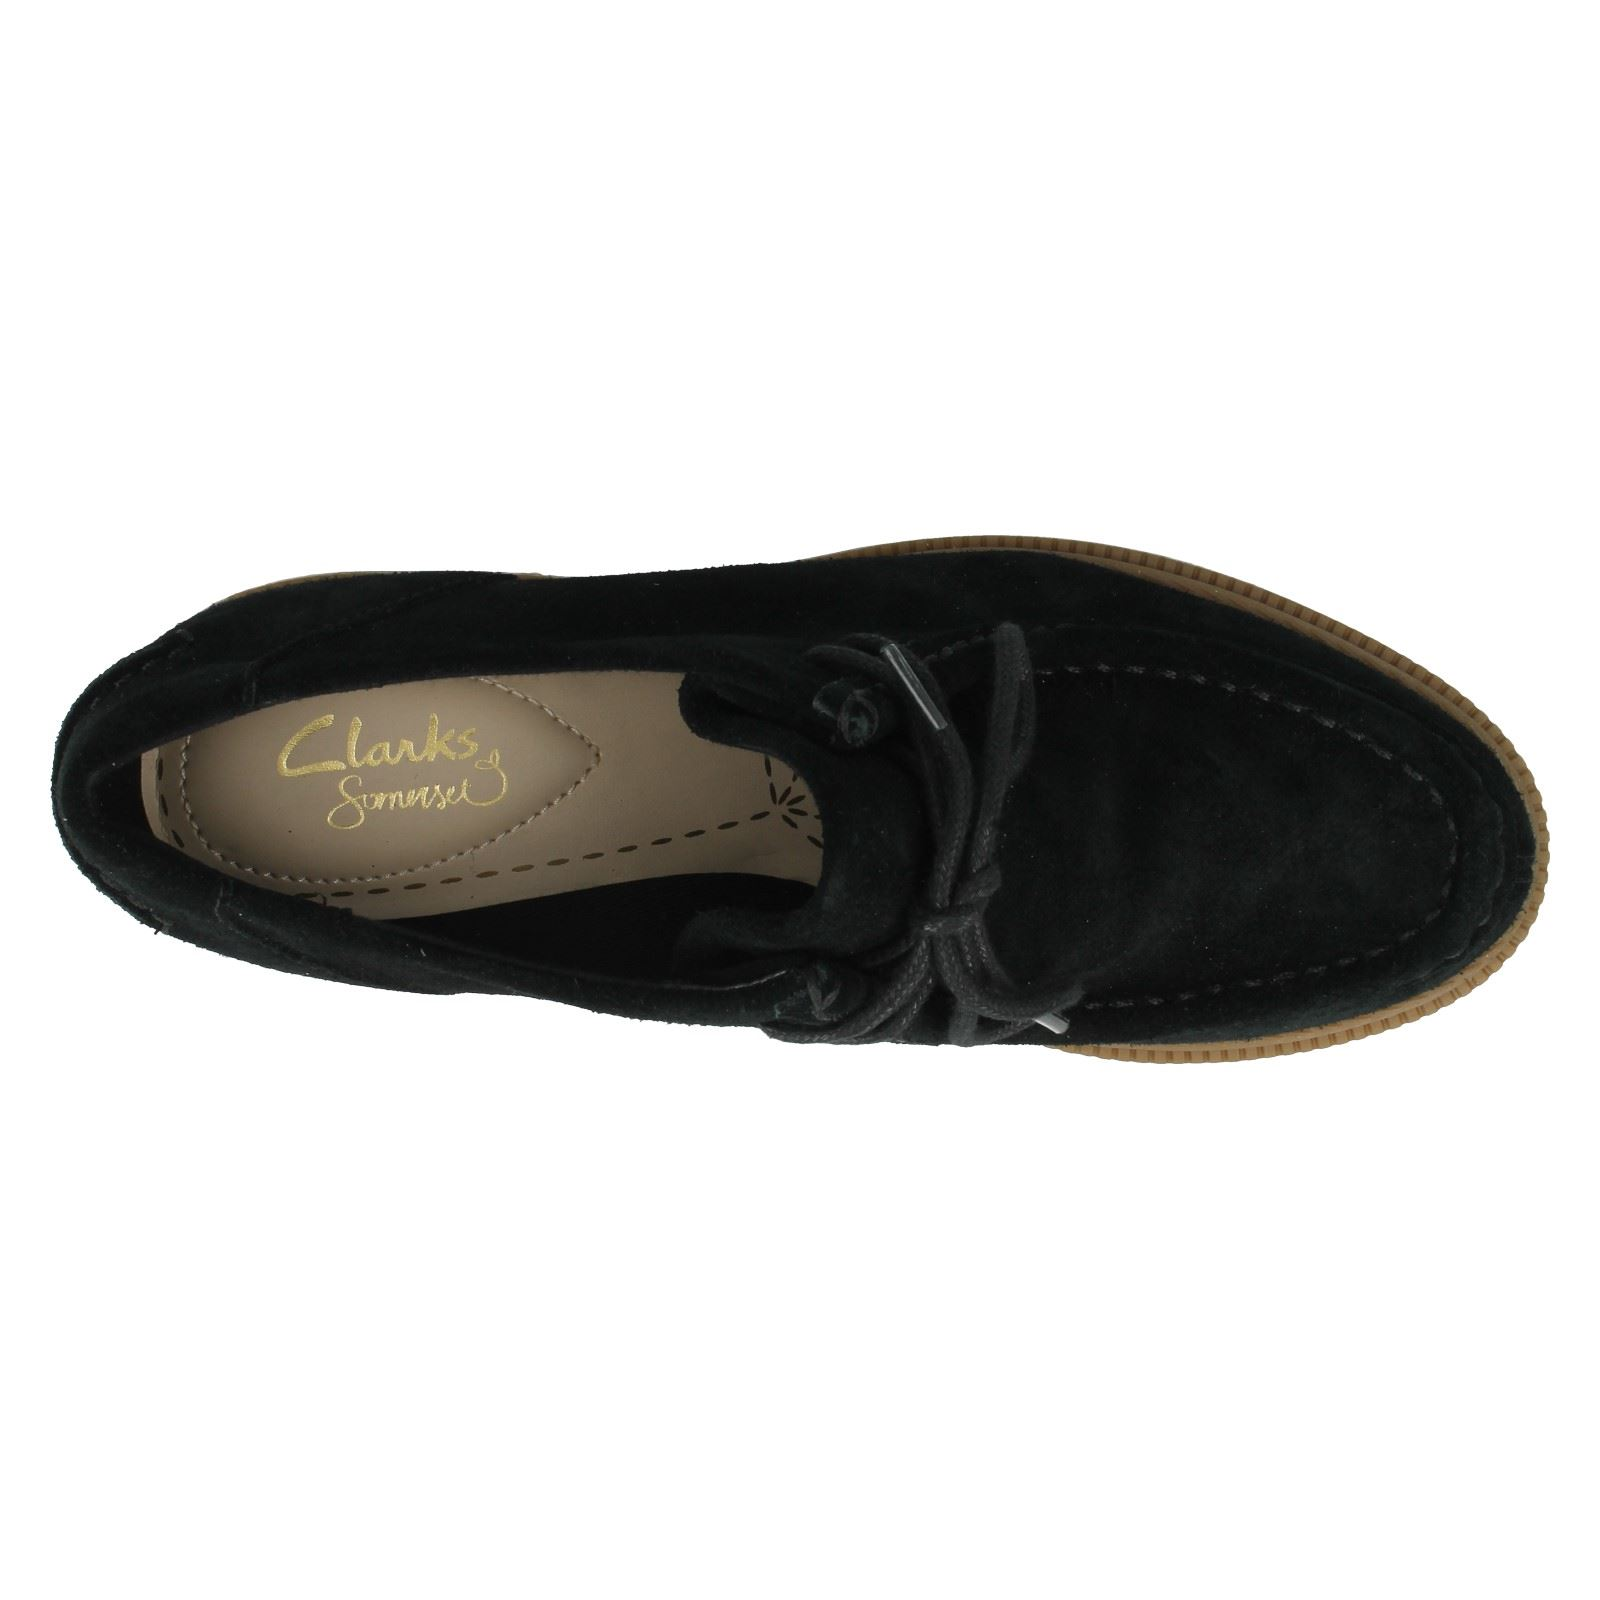 Label Ladies Suede Smart Trouser Black Willow Shoes Balmer Clarks RSqS1wI